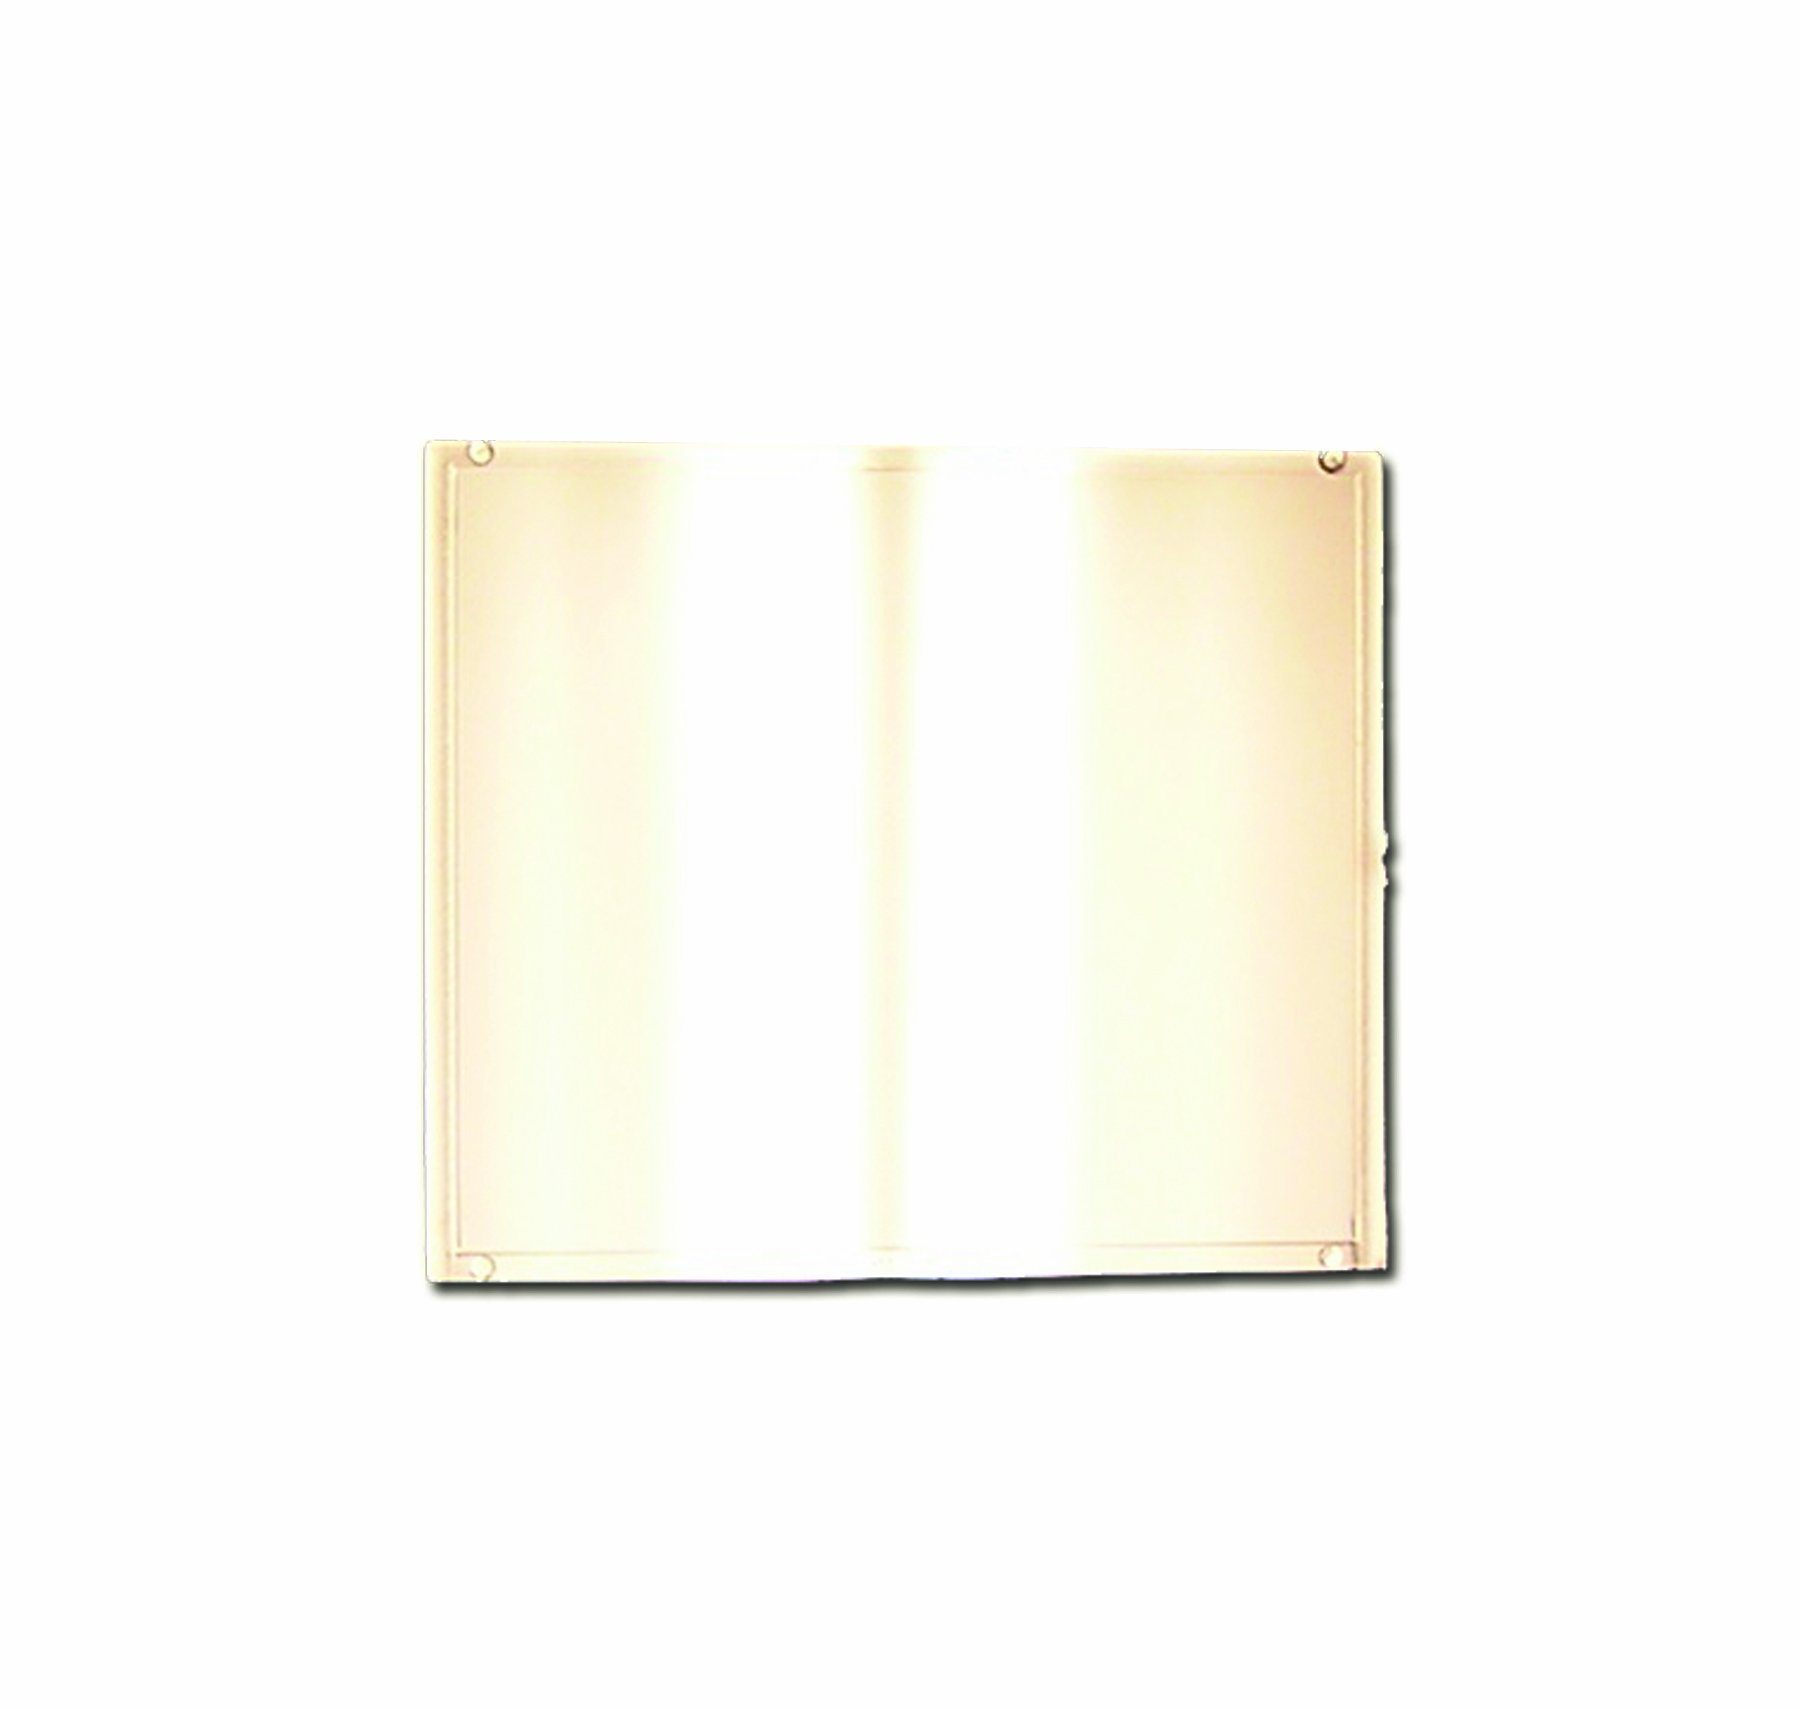 Sellstrom 18712 Gold Coated Polycarbonate Passive Welding Filter Plate, Shade 12, 4-1/2'' Length x 5-1/4'' Width